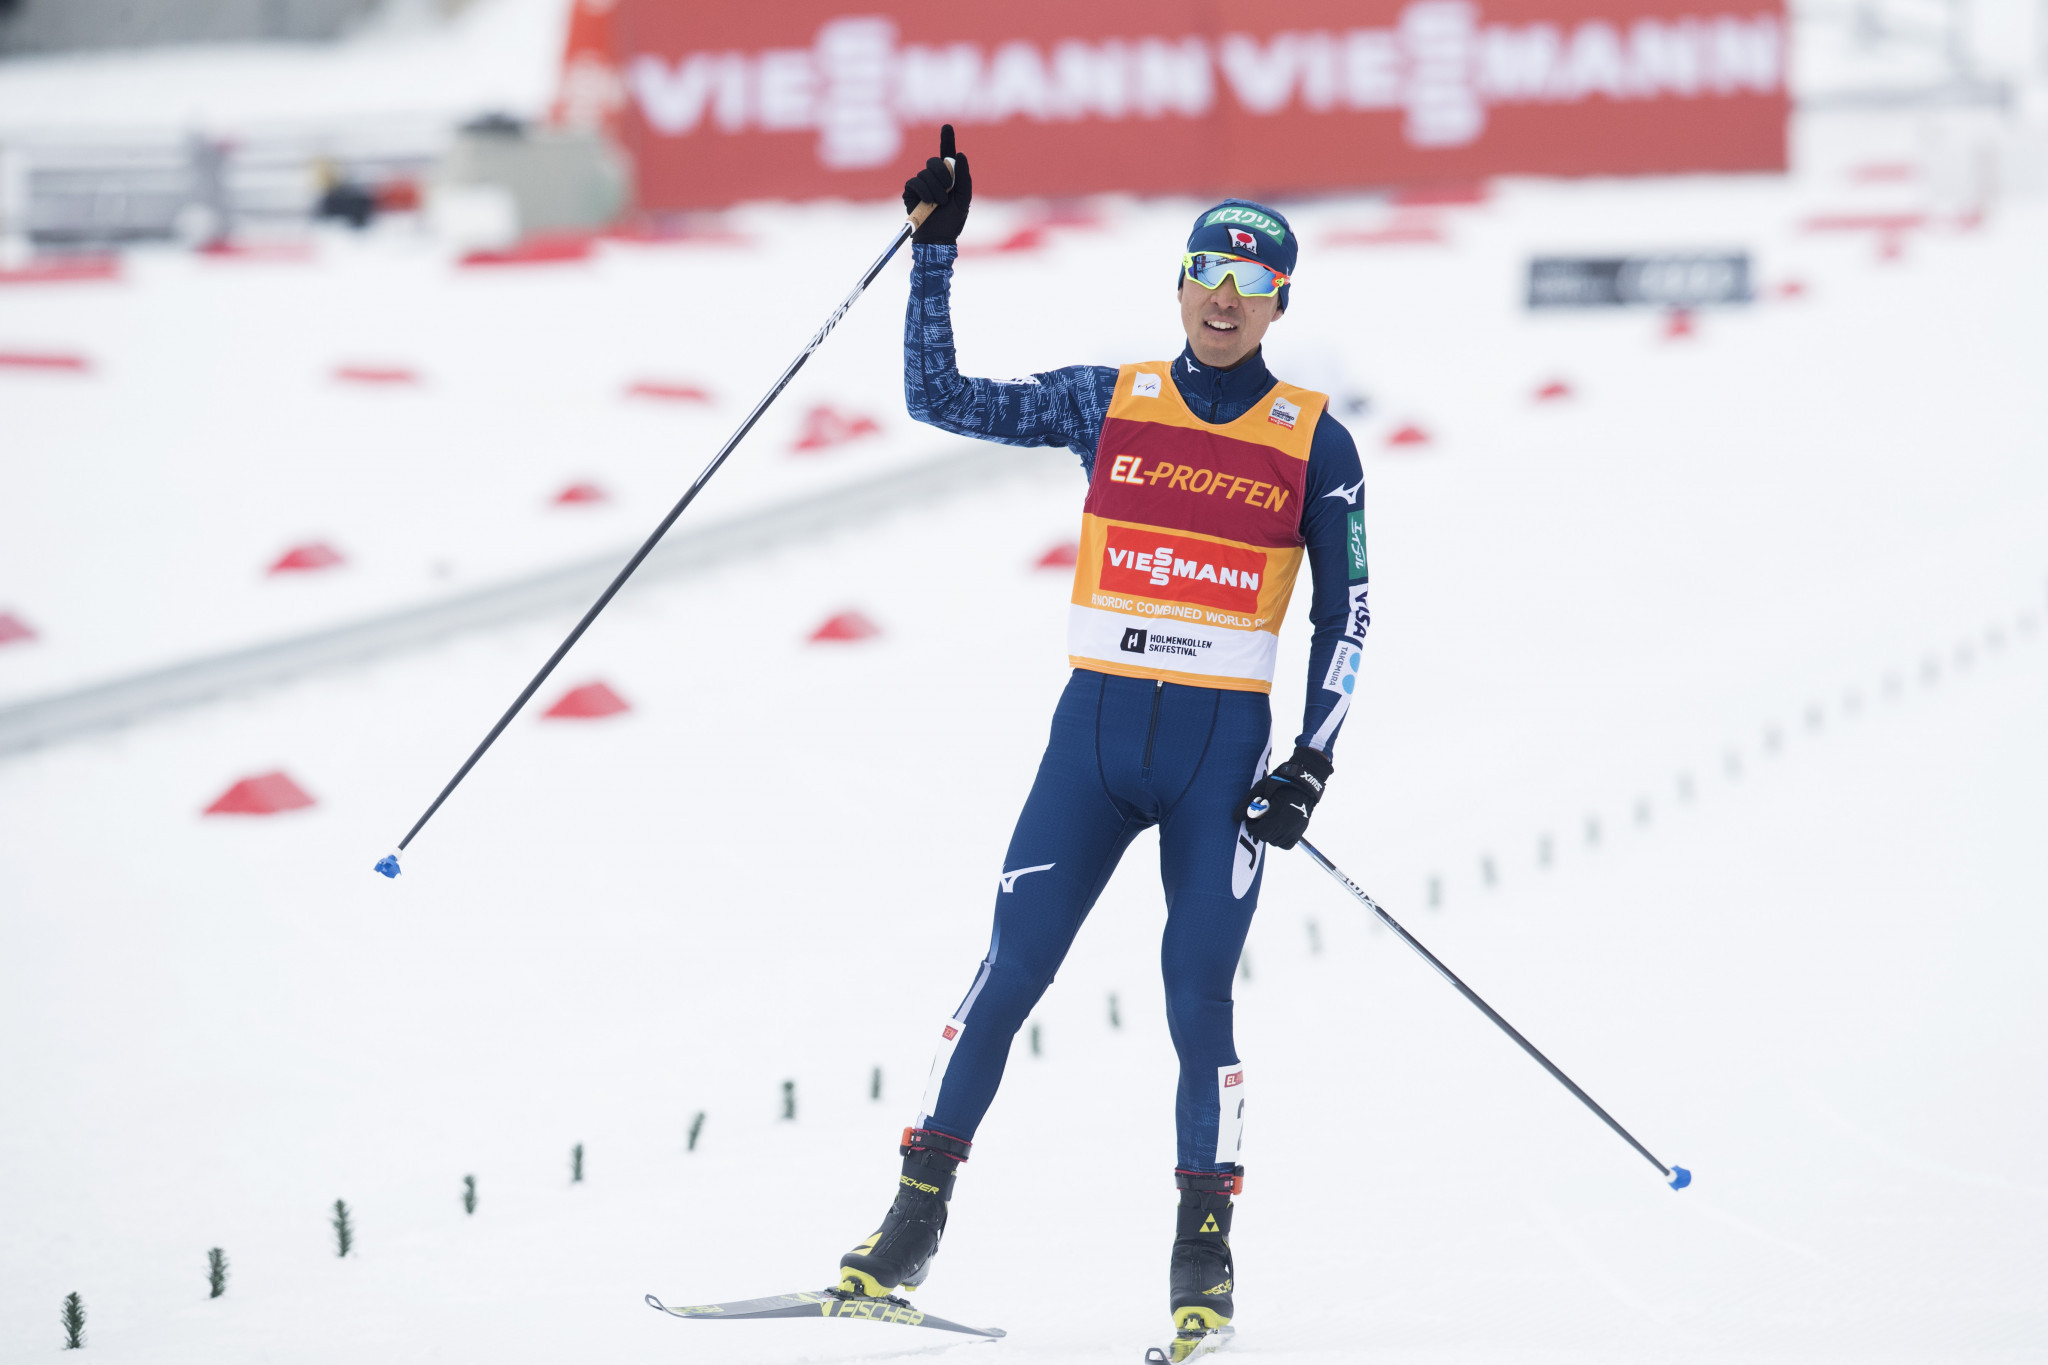 Trondheim poised for back-to-back FIS Nordic Combined World Cups